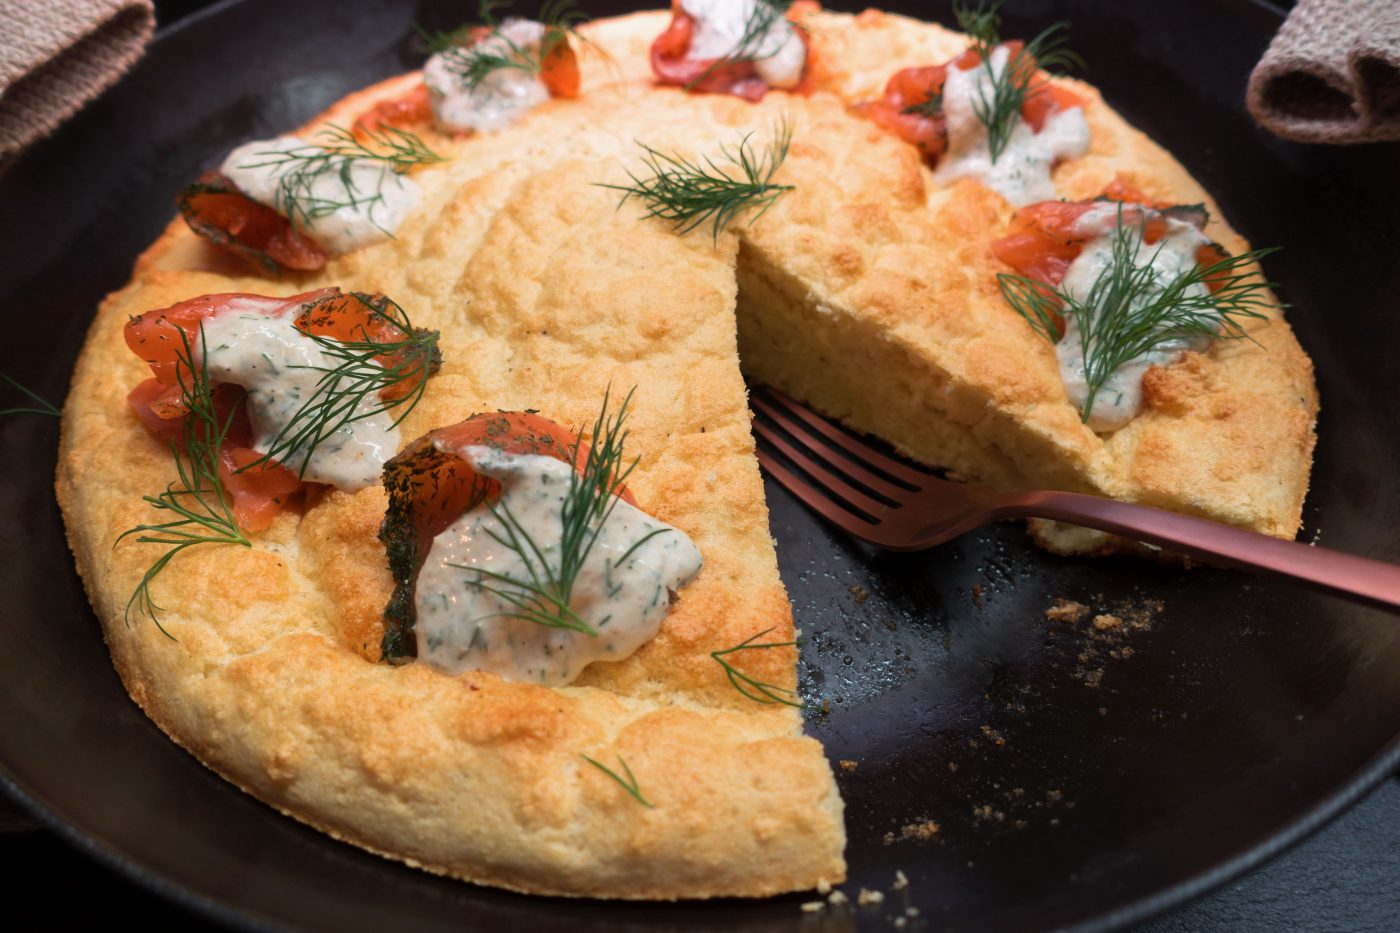 Finnish oven pancakes traditionally served with salmon, fresh herbs and horseradish cream